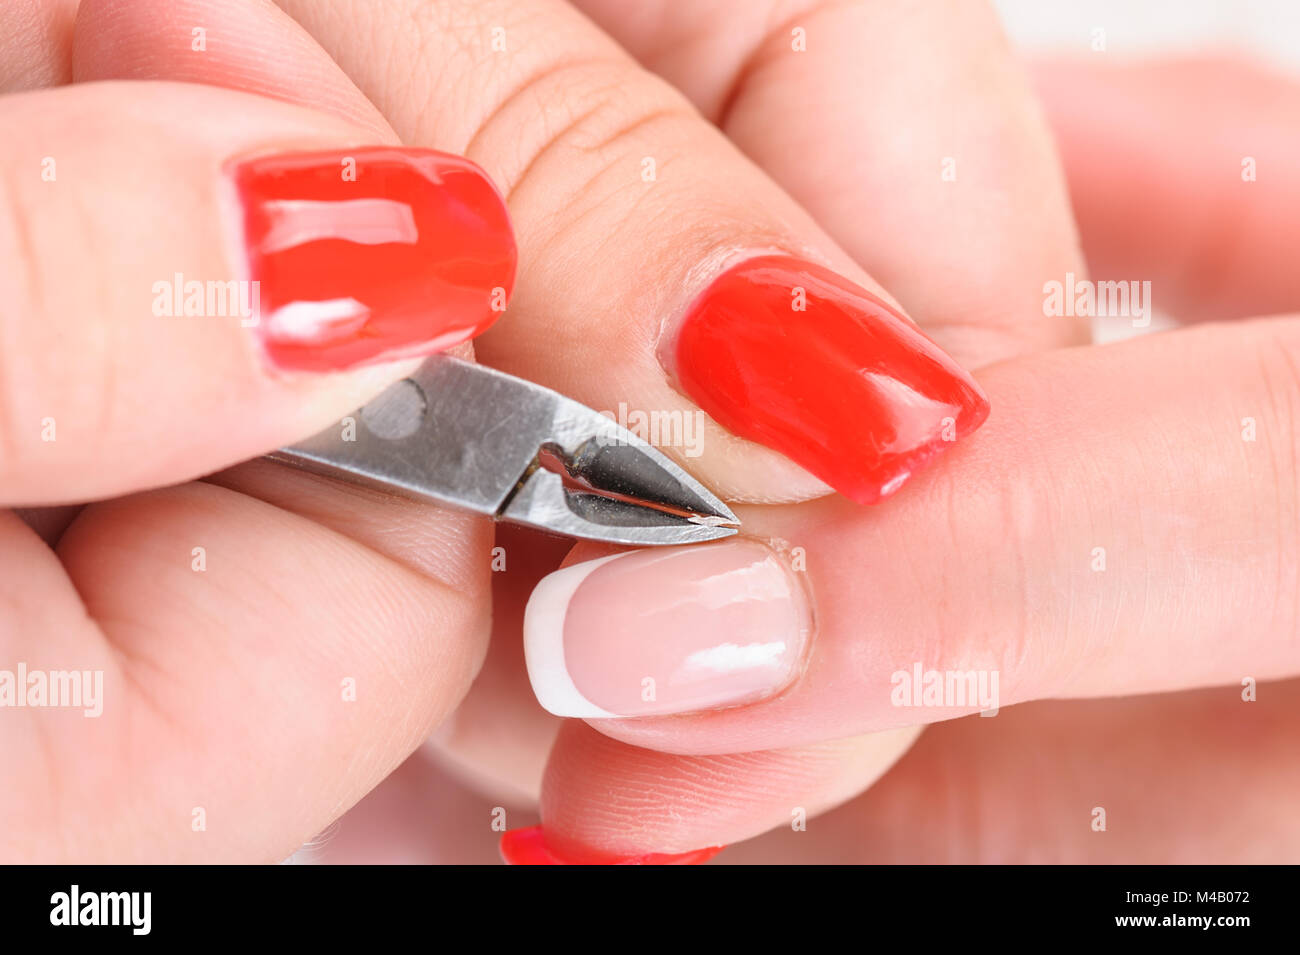 Cuticles cutting with nail clippers Stock Photo, Royalty Free Image ...